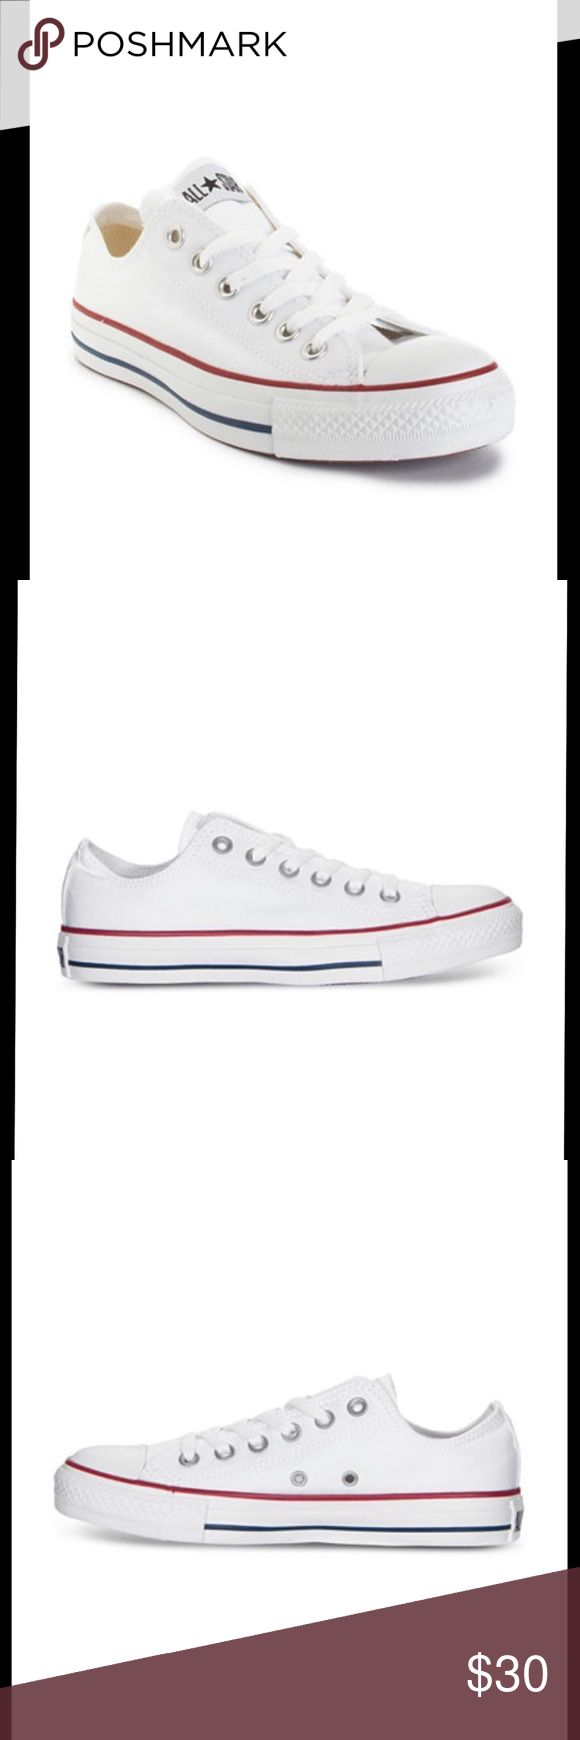 White Converse - Women's - Size 8 Women's White Converse, size 8!! been worn maybe 5 times - very good shape!!! Converse Shoes Sneakers